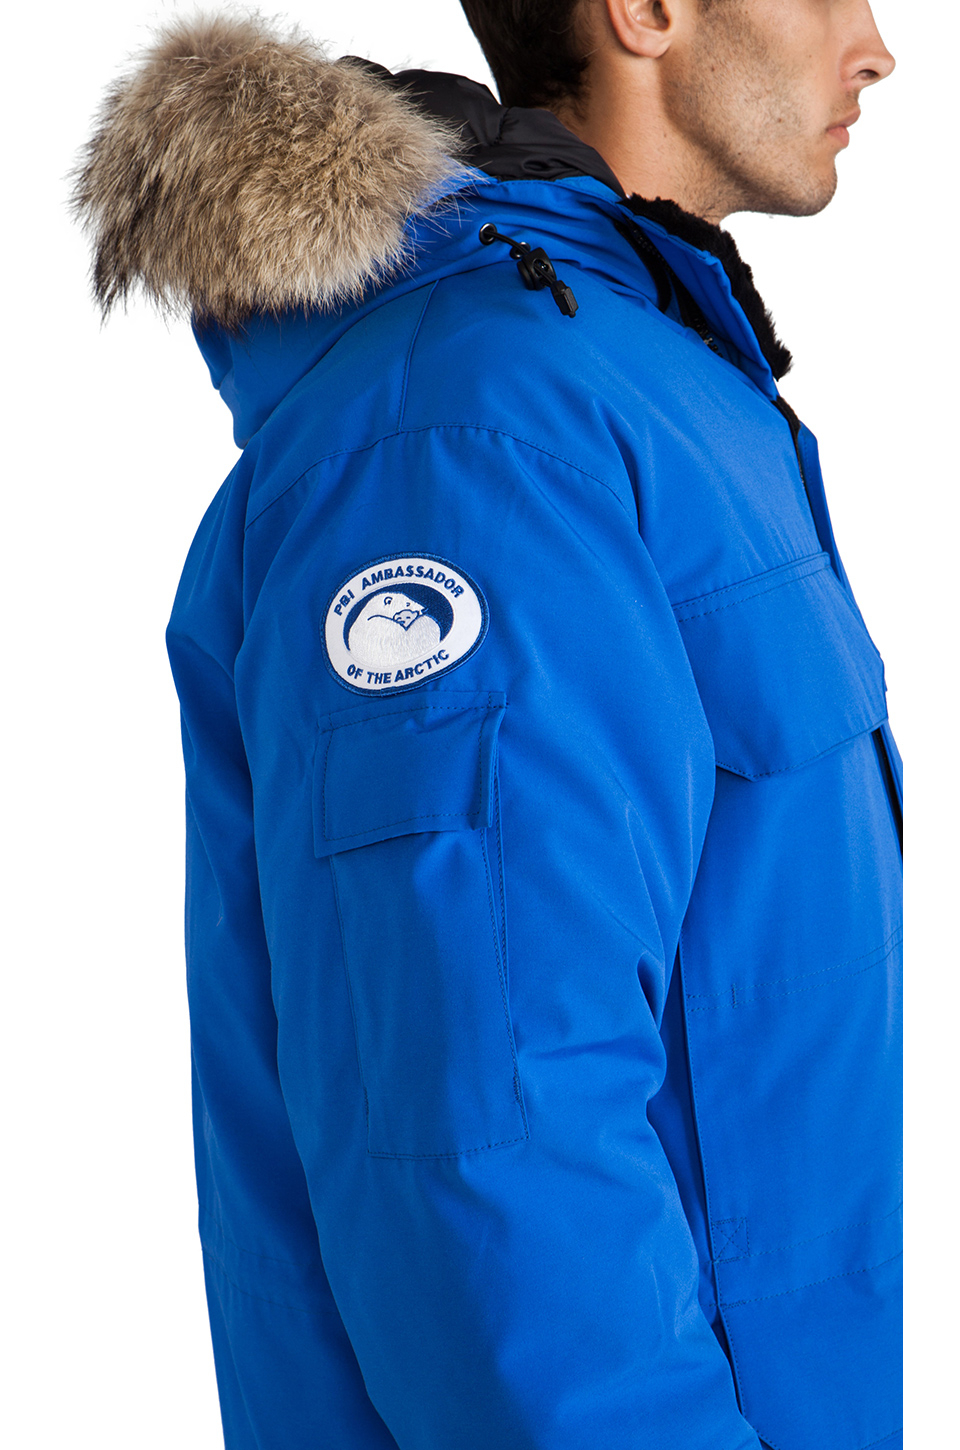 Canada Goose hats sale price - Canada goose Polar Bears International Expedition Parka With ...